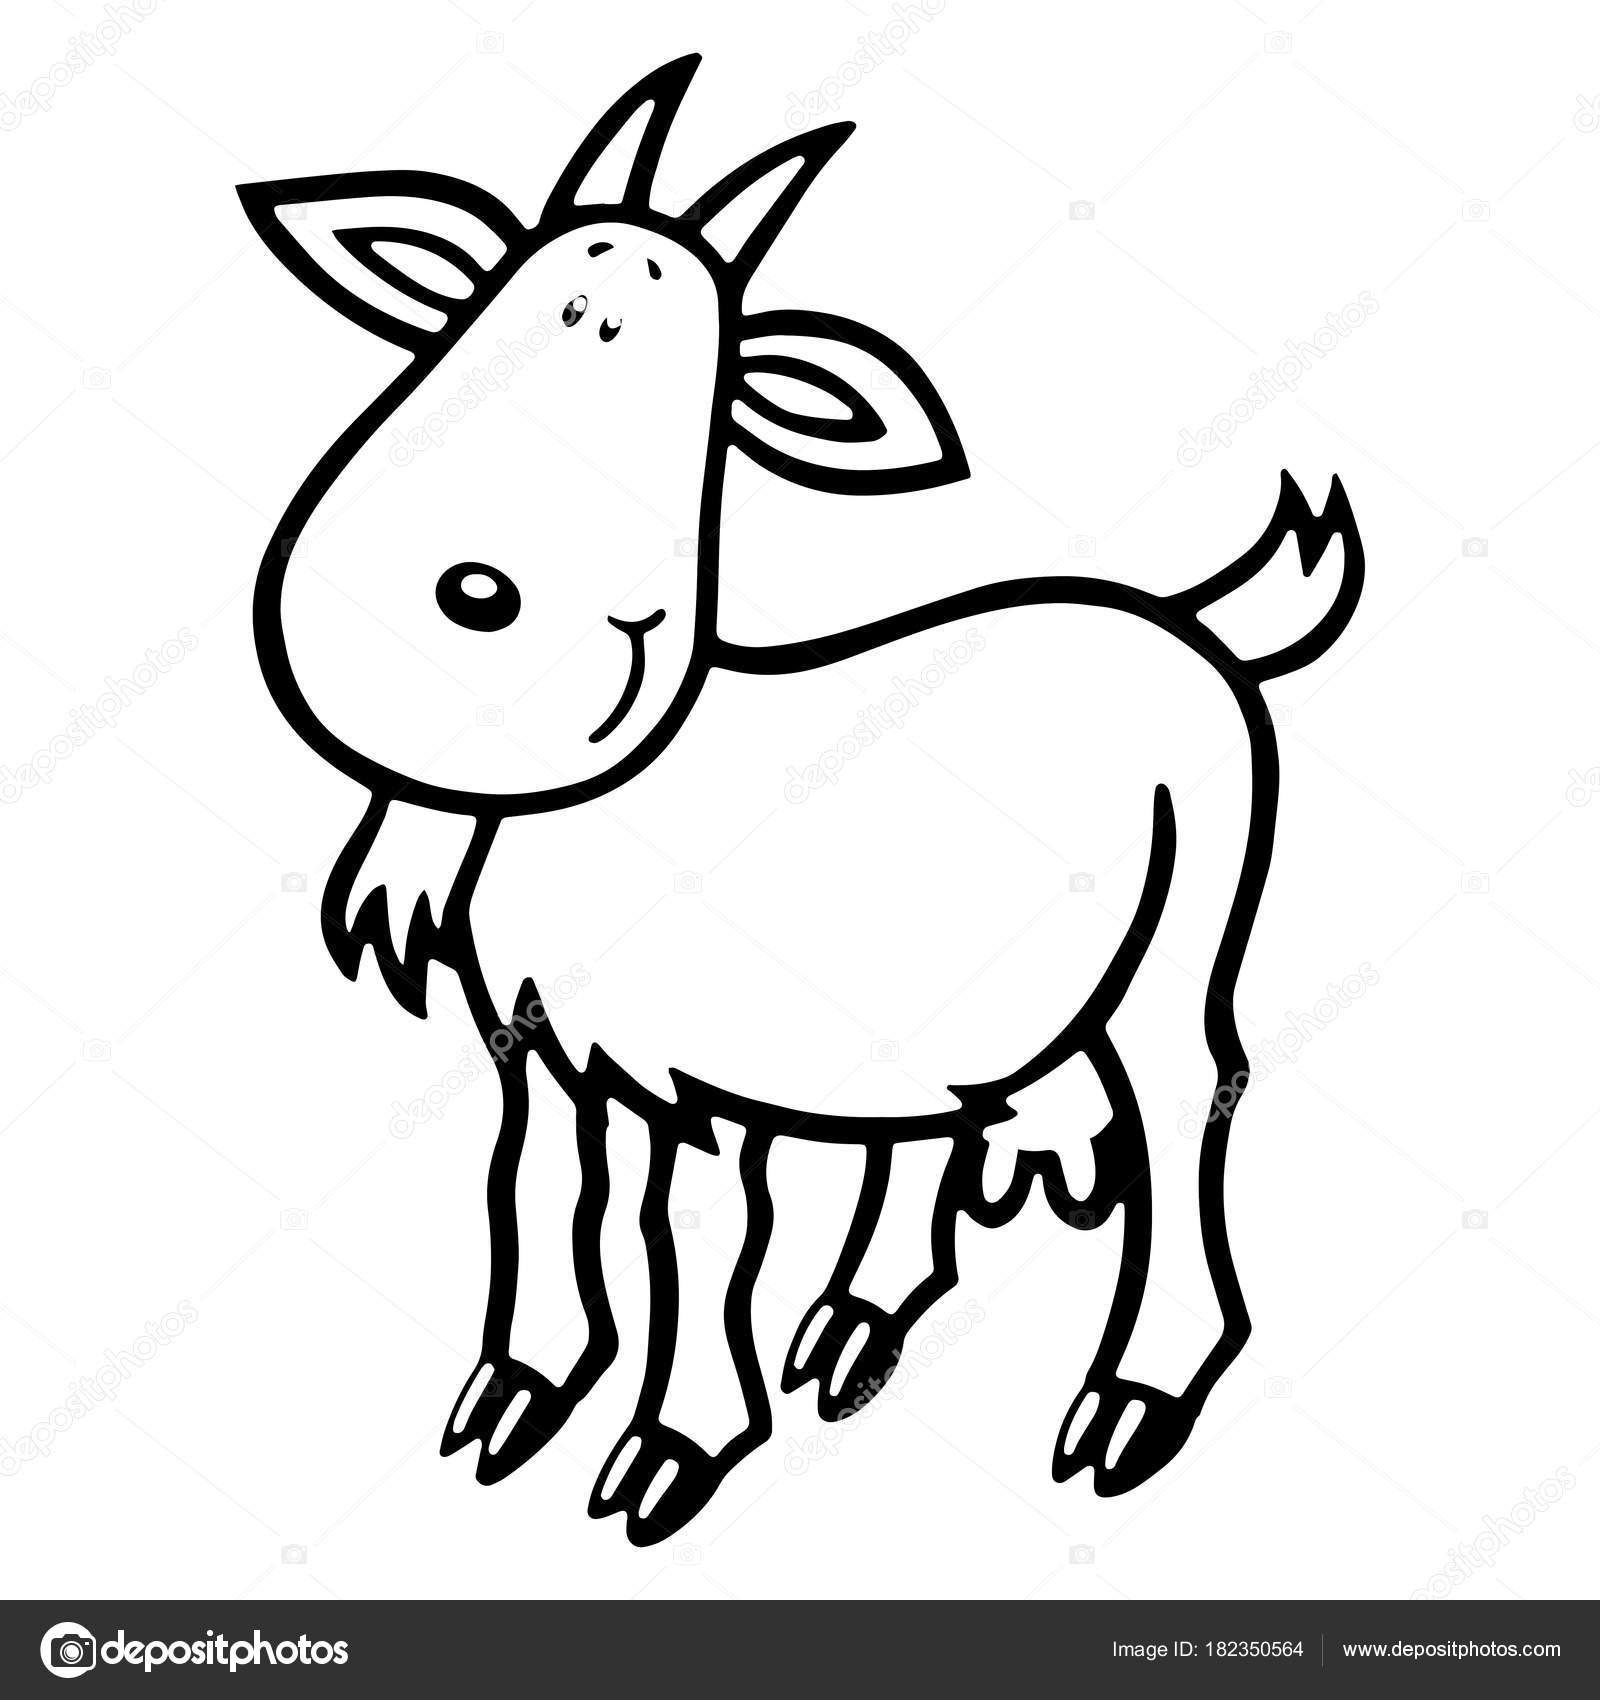 goat picture cartoon clipart goat kambing clipart goat kambing transparent goat cartoon picture